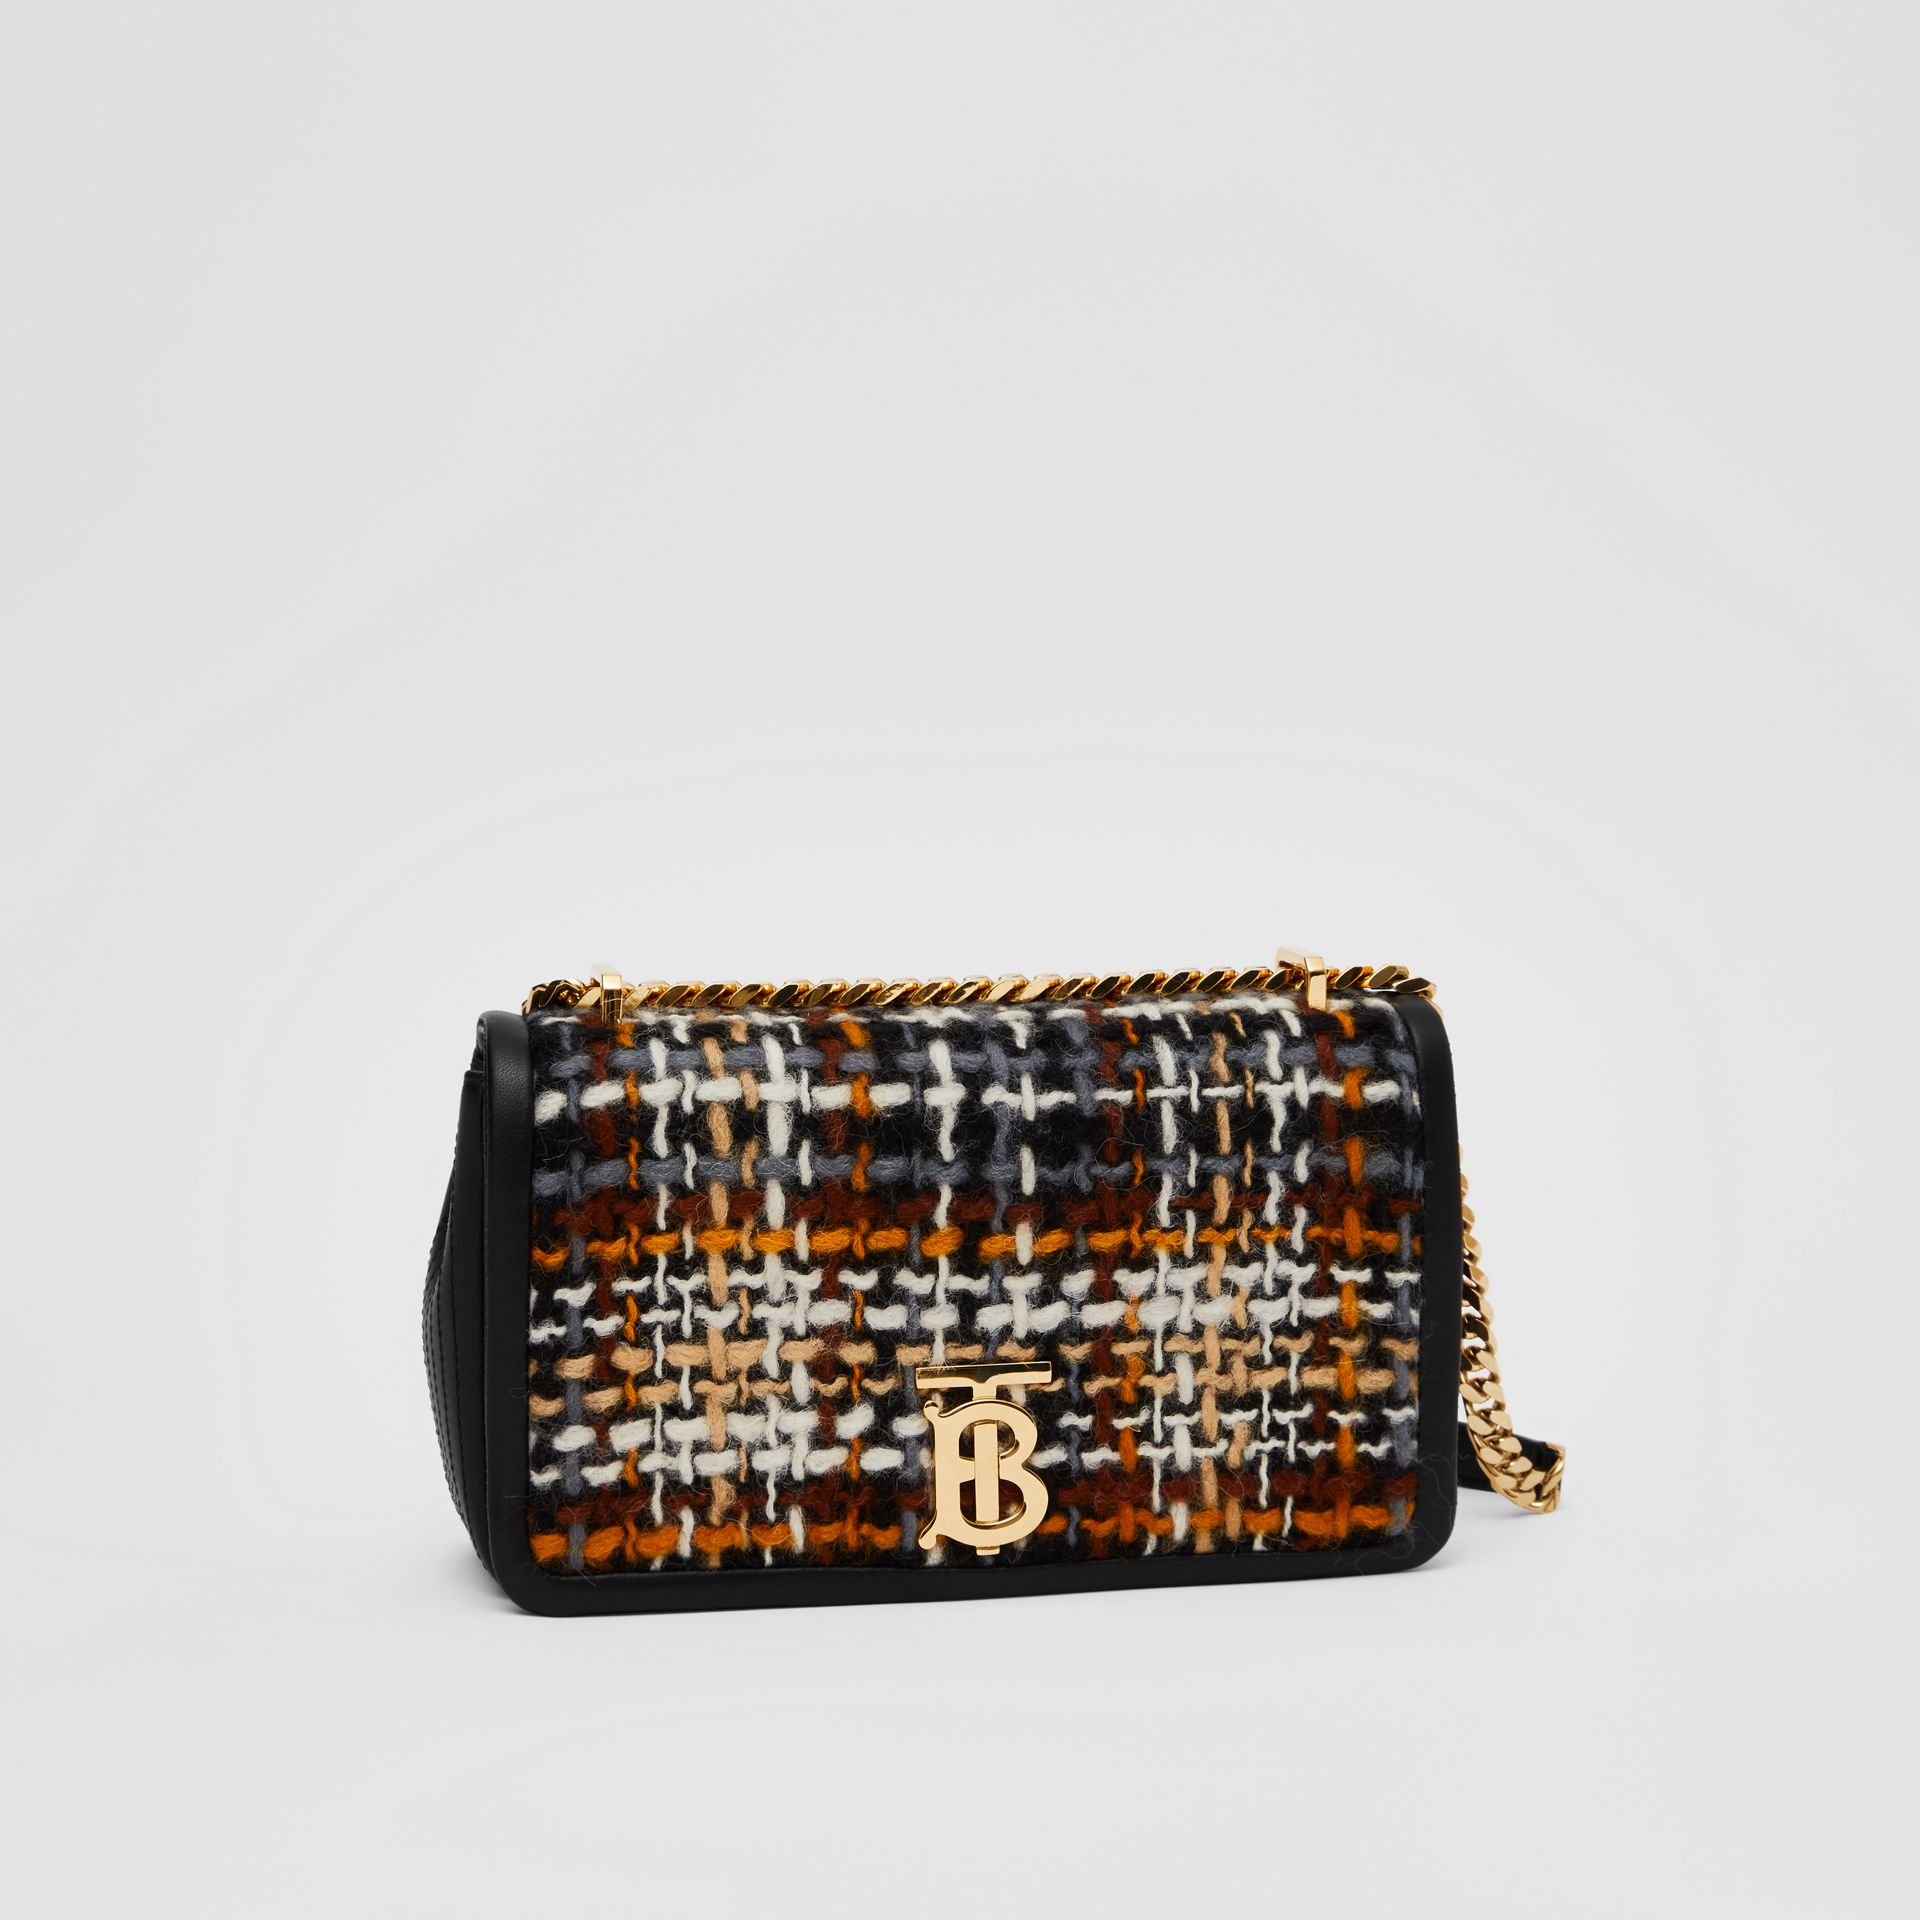 Small Tweed and Lambskin Lola Bag in Black - Women | Burberry Australia - gallery image 6